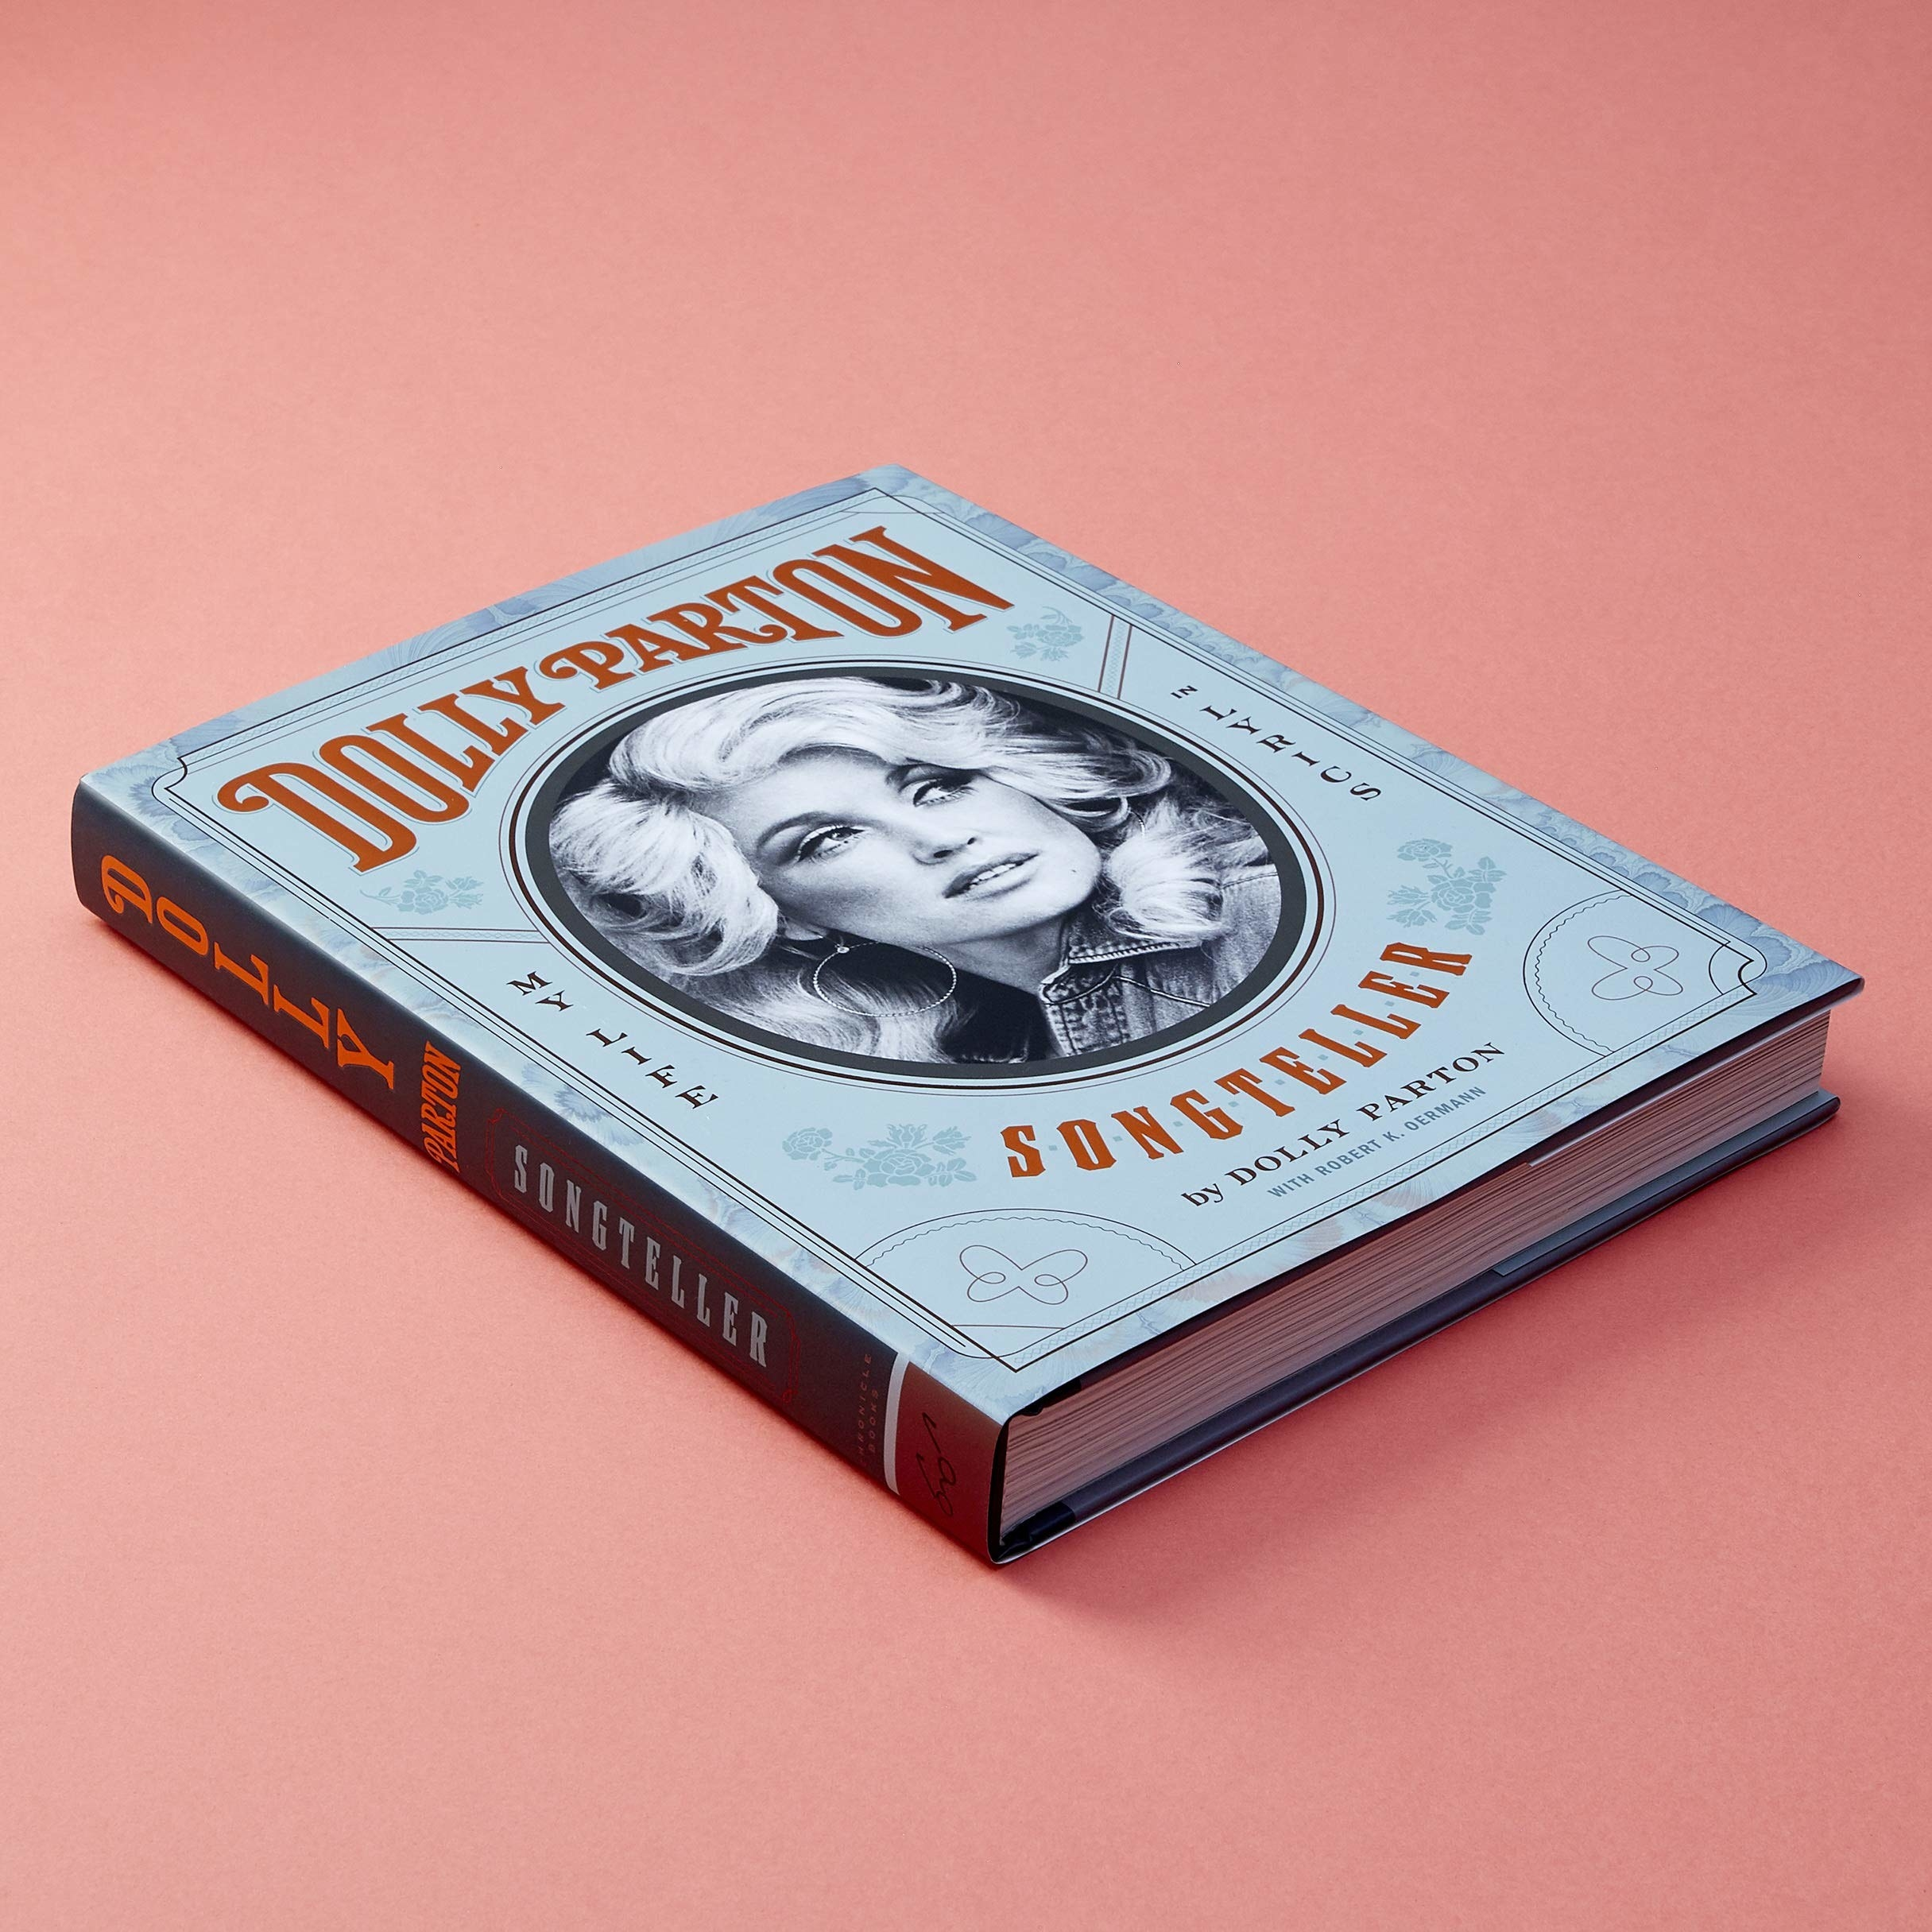 The cover of the book with Dolly Parton's face on it